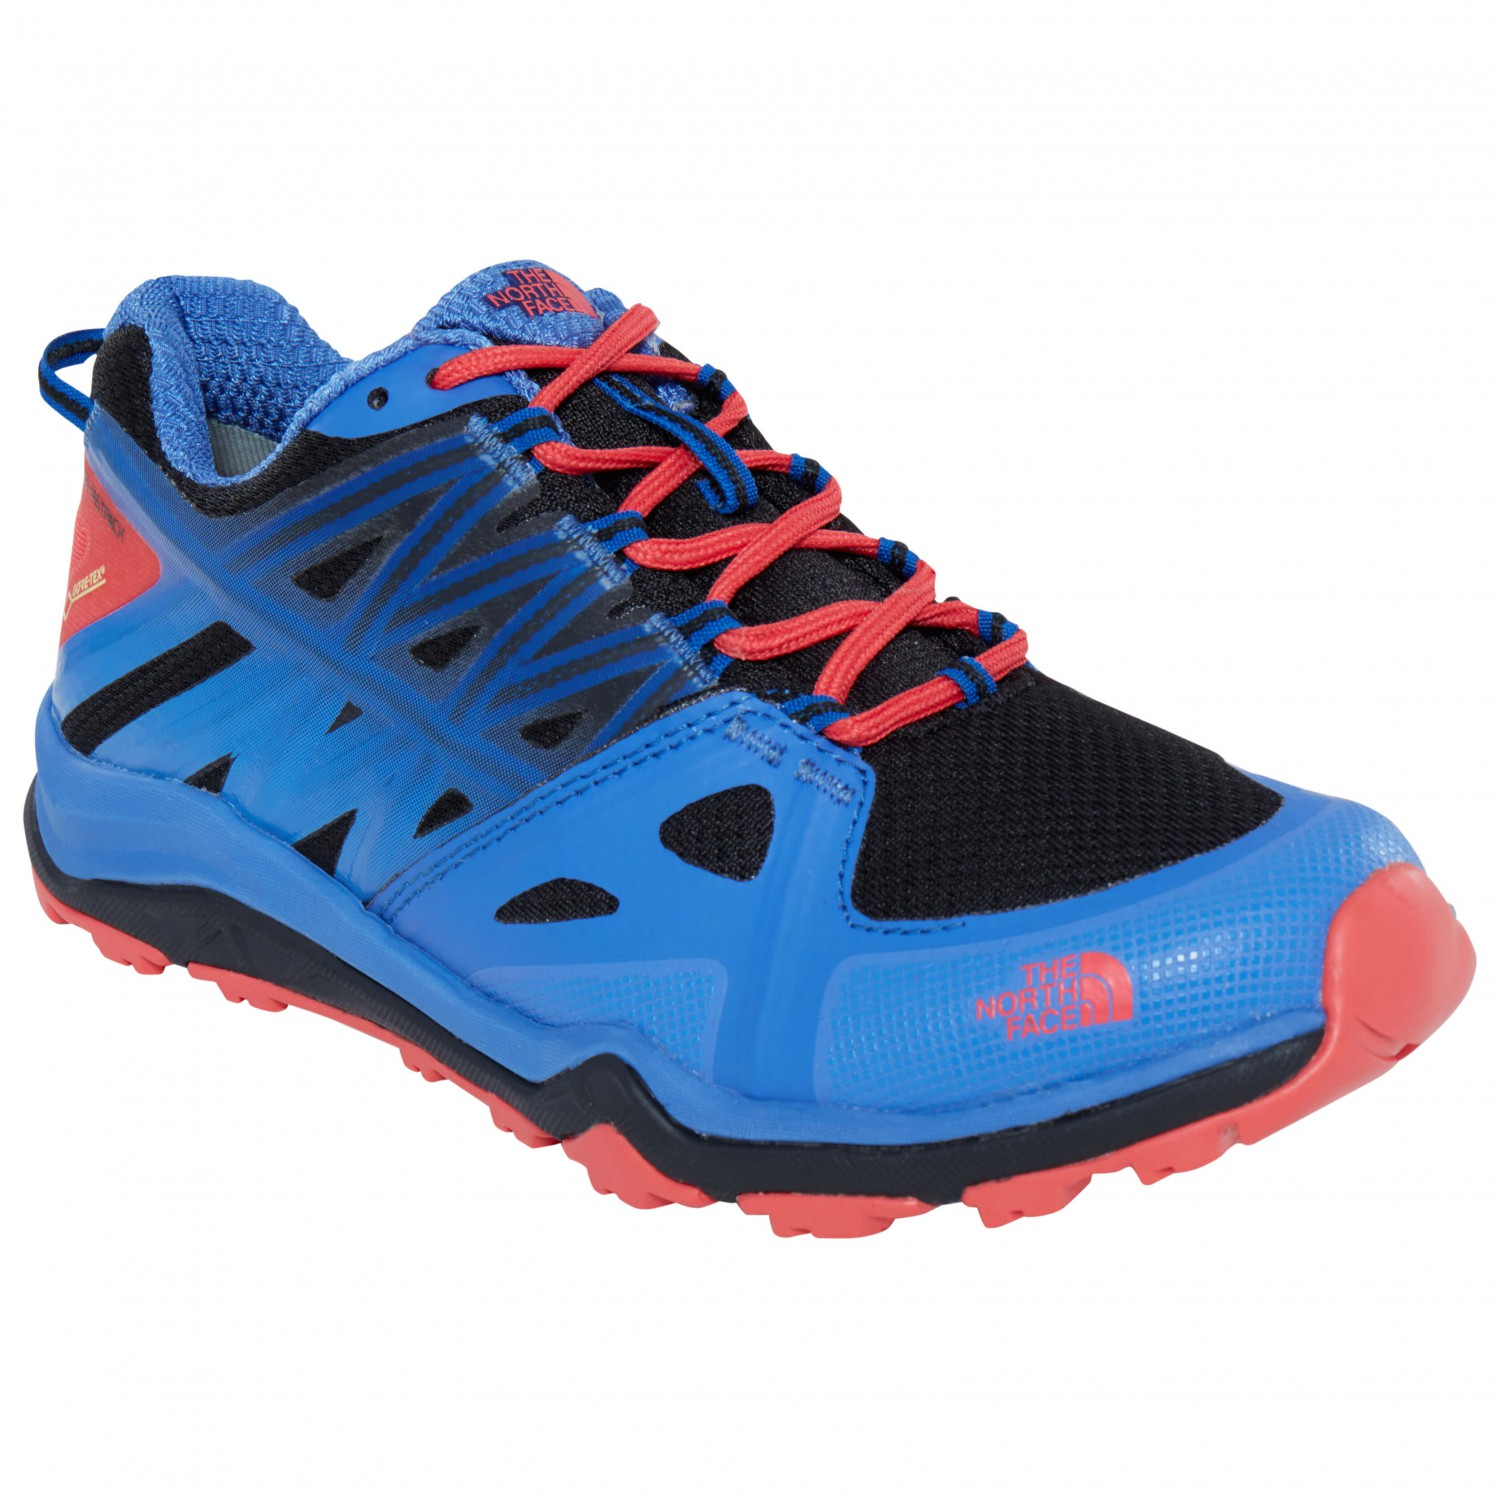 The North Face Hedgehog Fastpack Lite II GTX Chaussures